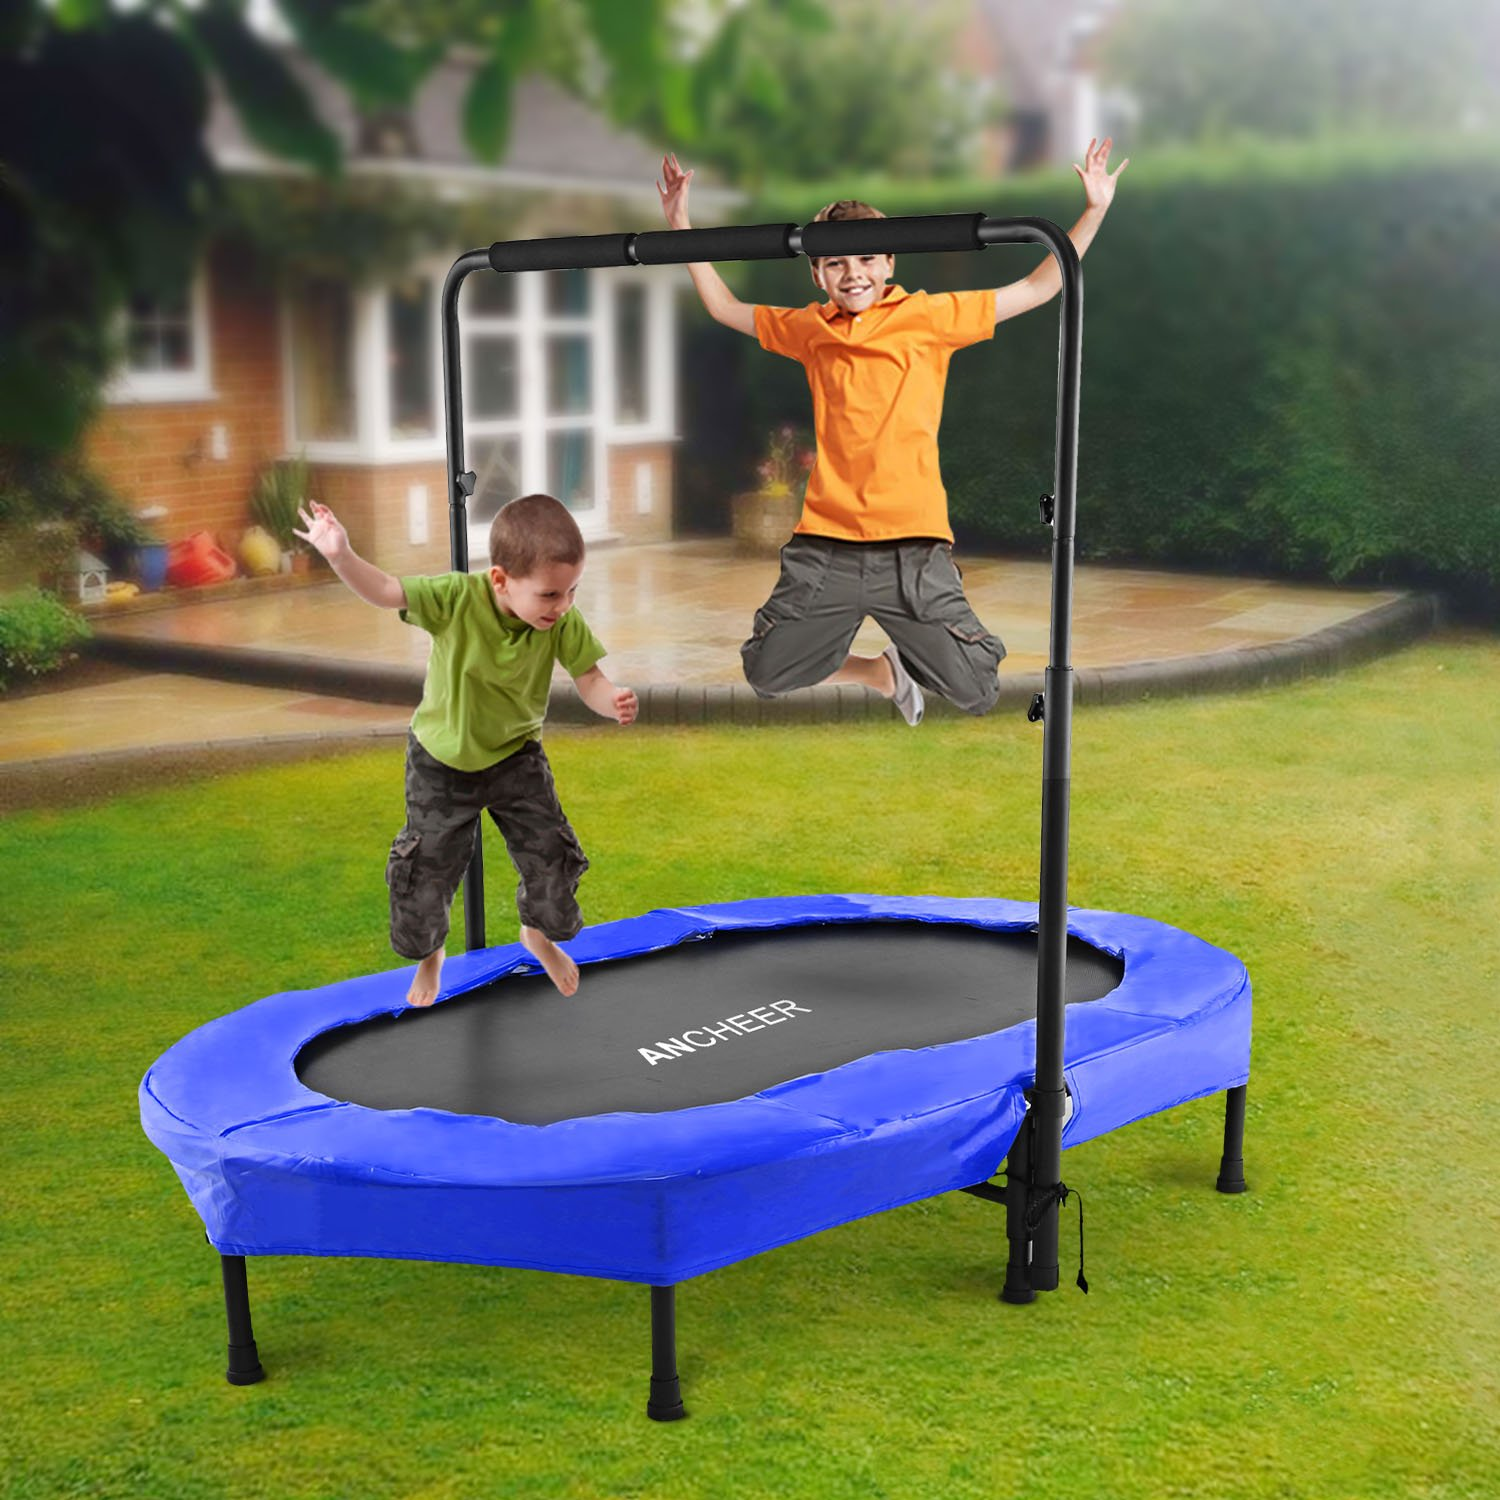 ANCHEER Rebounder Trampoline, Foldable Exercise Trampoline with Adjustable Handrail for Adults Kids, Parent-Child Mini Trampoline for Two Kids ( 37.8'' - 50'') by ANCHEER